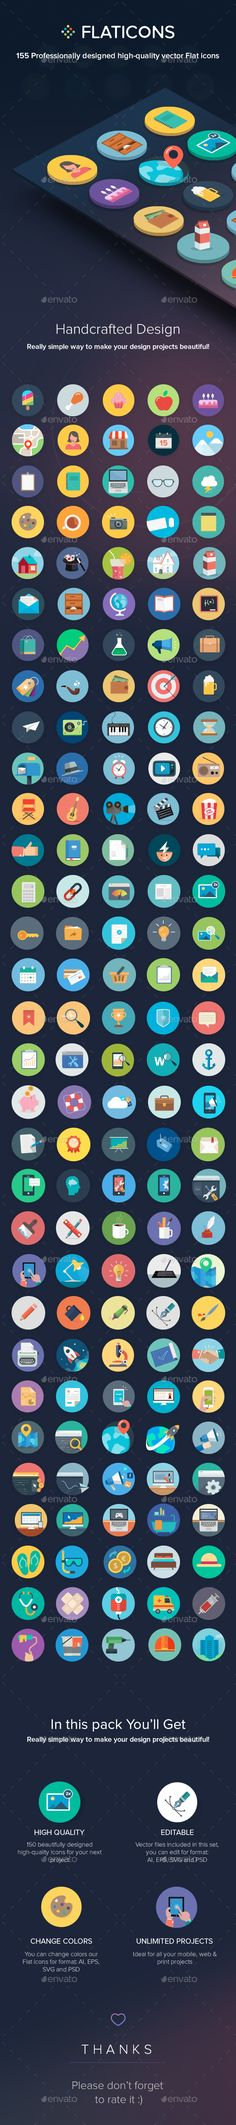 150 Flat Icons. Download here: http://graphicriver.net/item/150-flat-icons/16634808?ref=ksioks